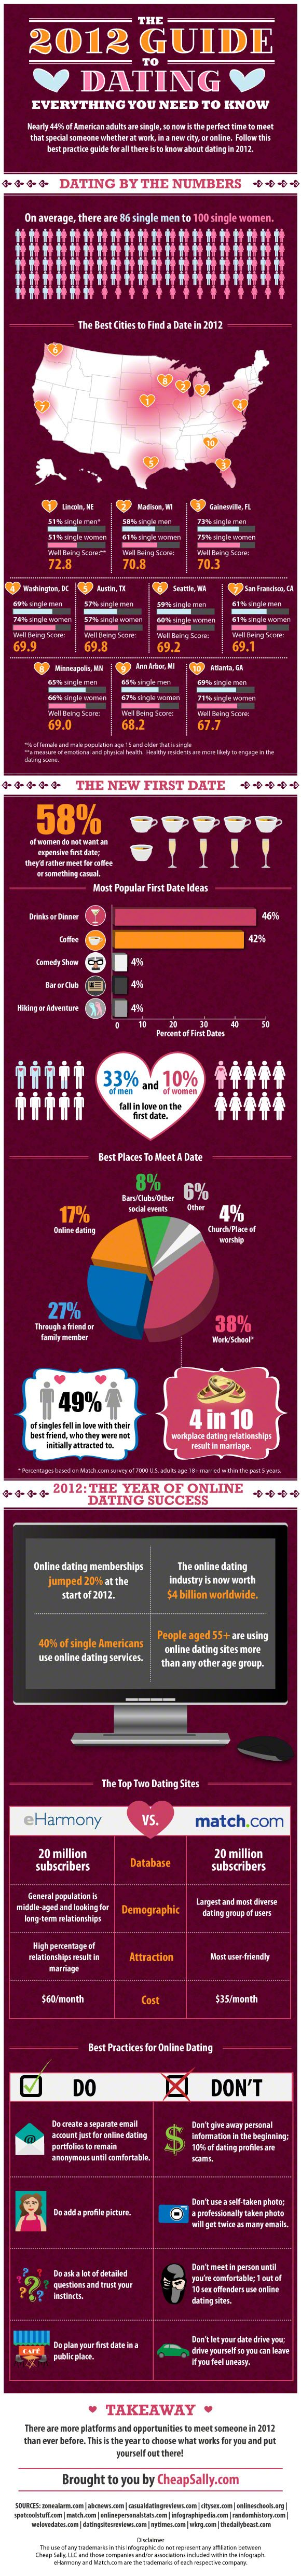 The 2012 Guide to Dating [INFOGRAPHIC] | Best Infographics